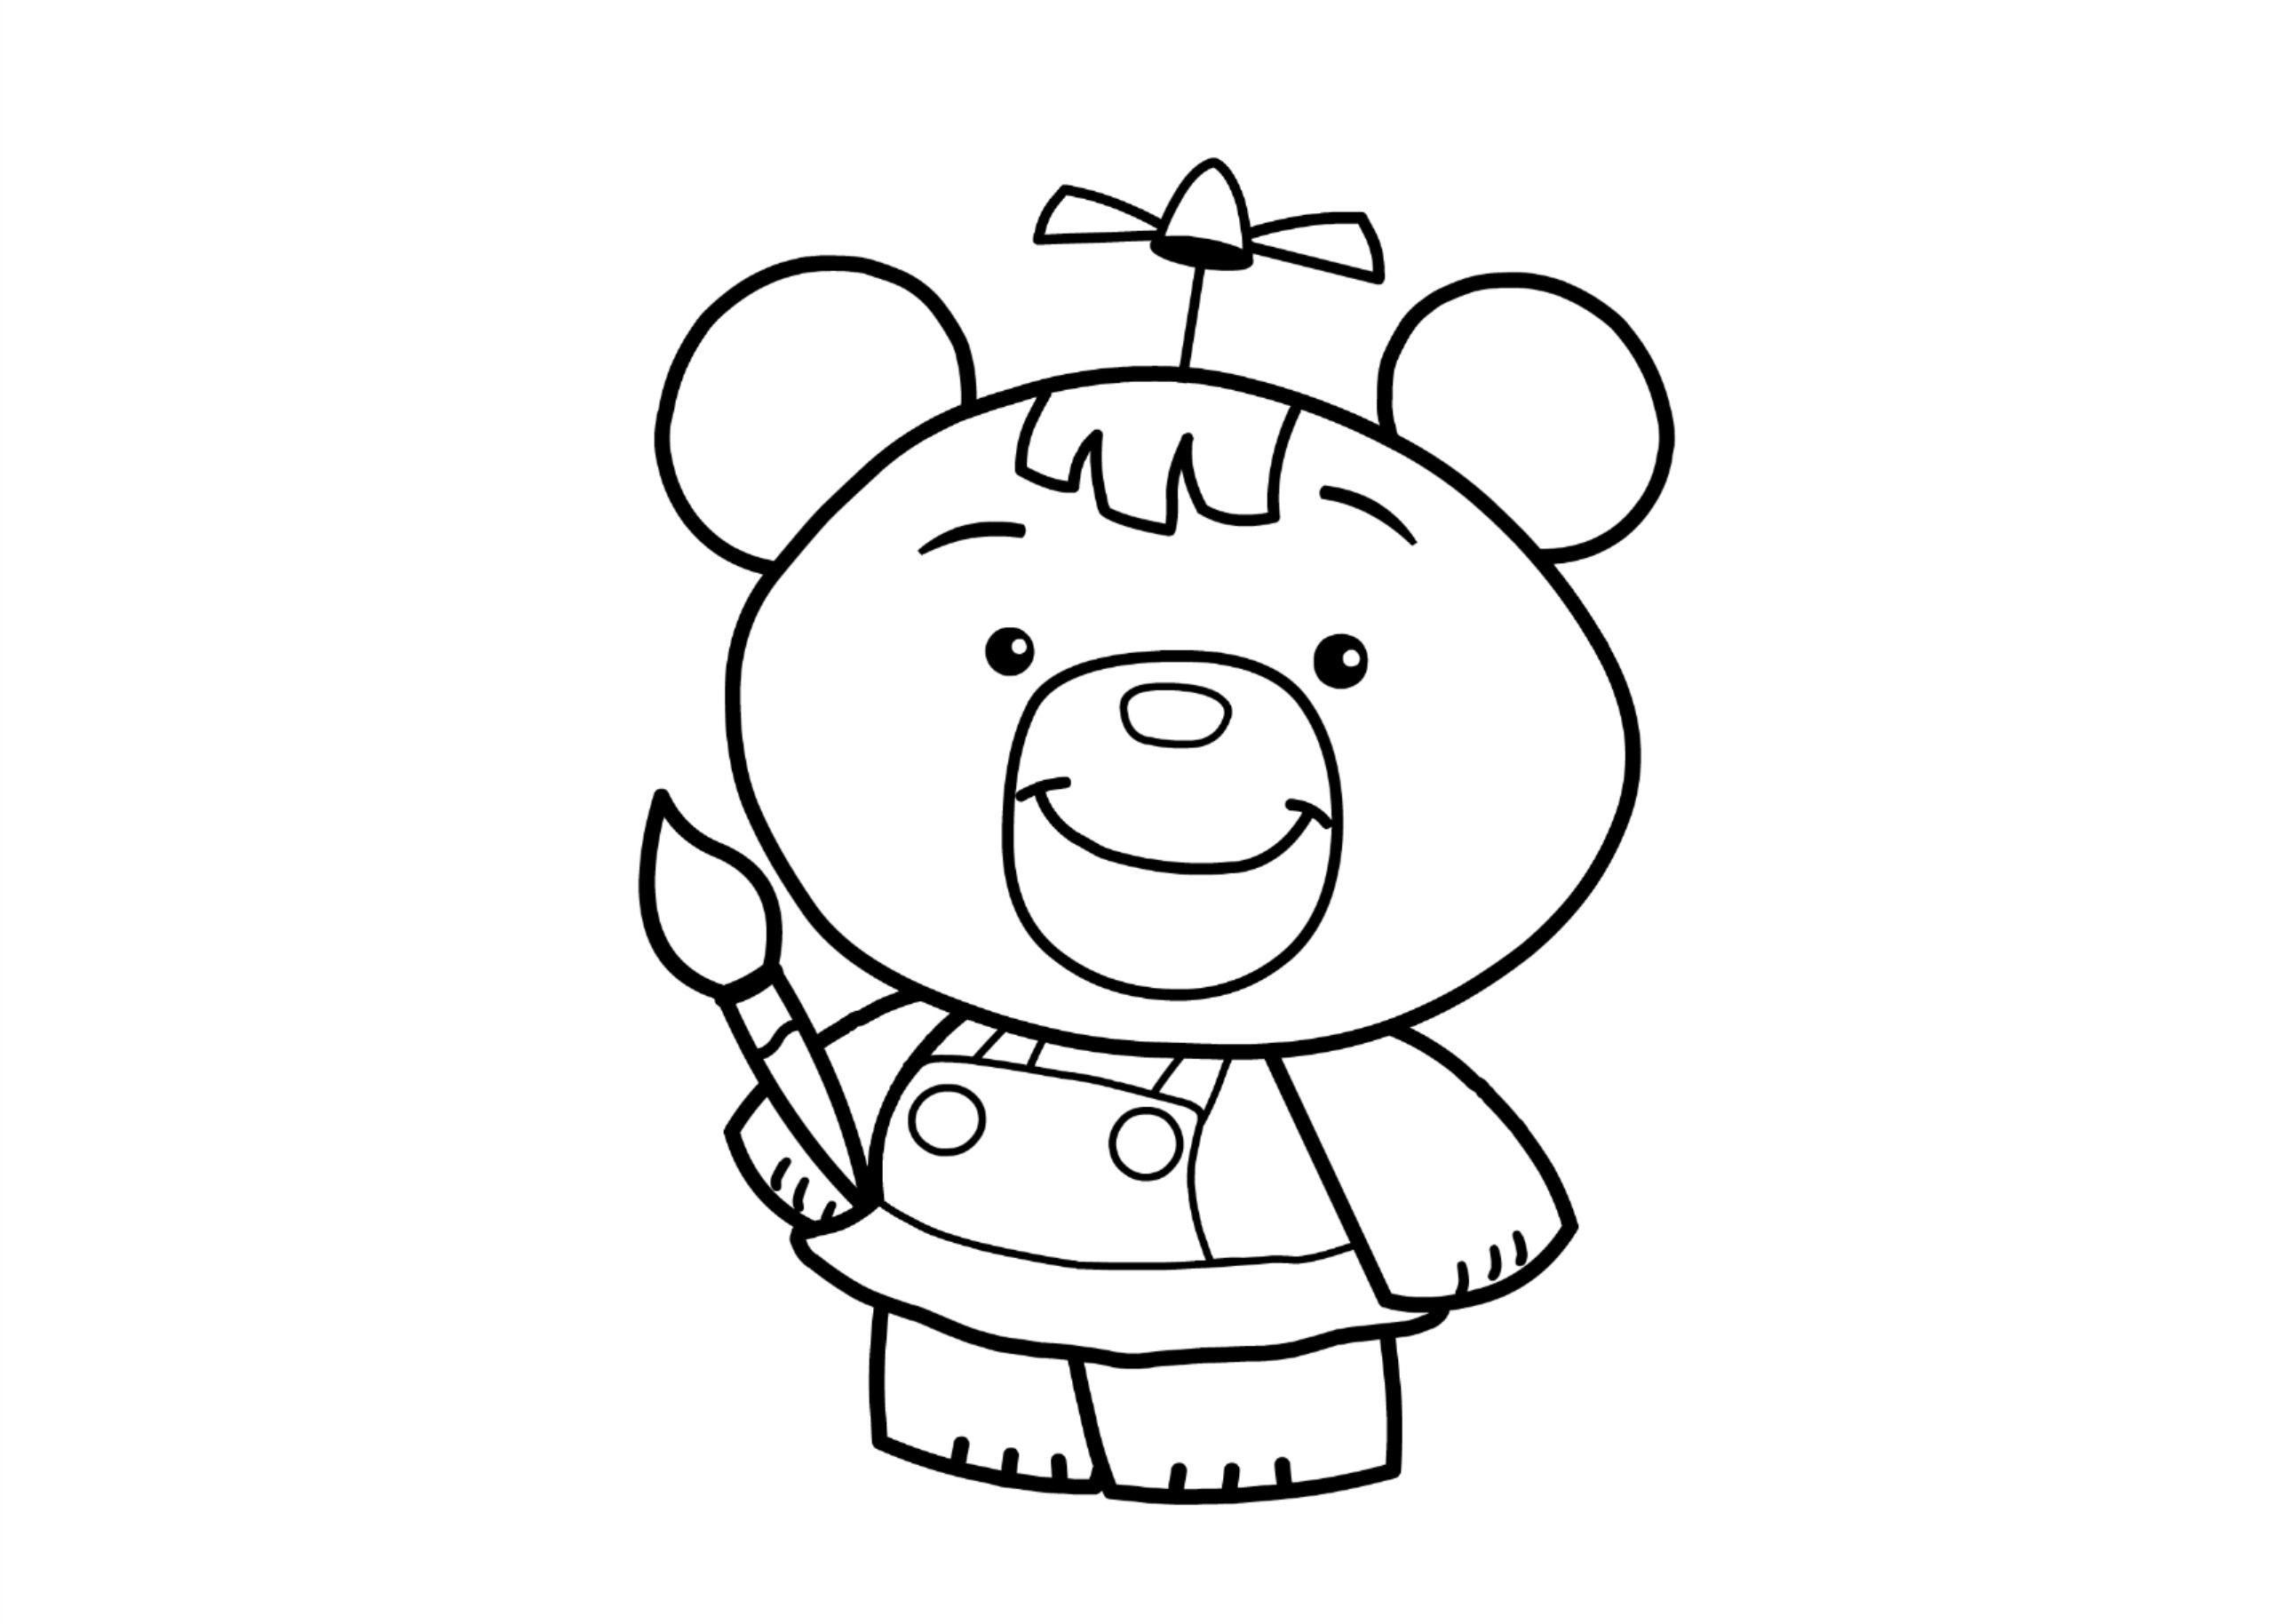 Babyfirst Coloring Pages Coloring Pages Baby First Tv Free Printable Coloring Pages